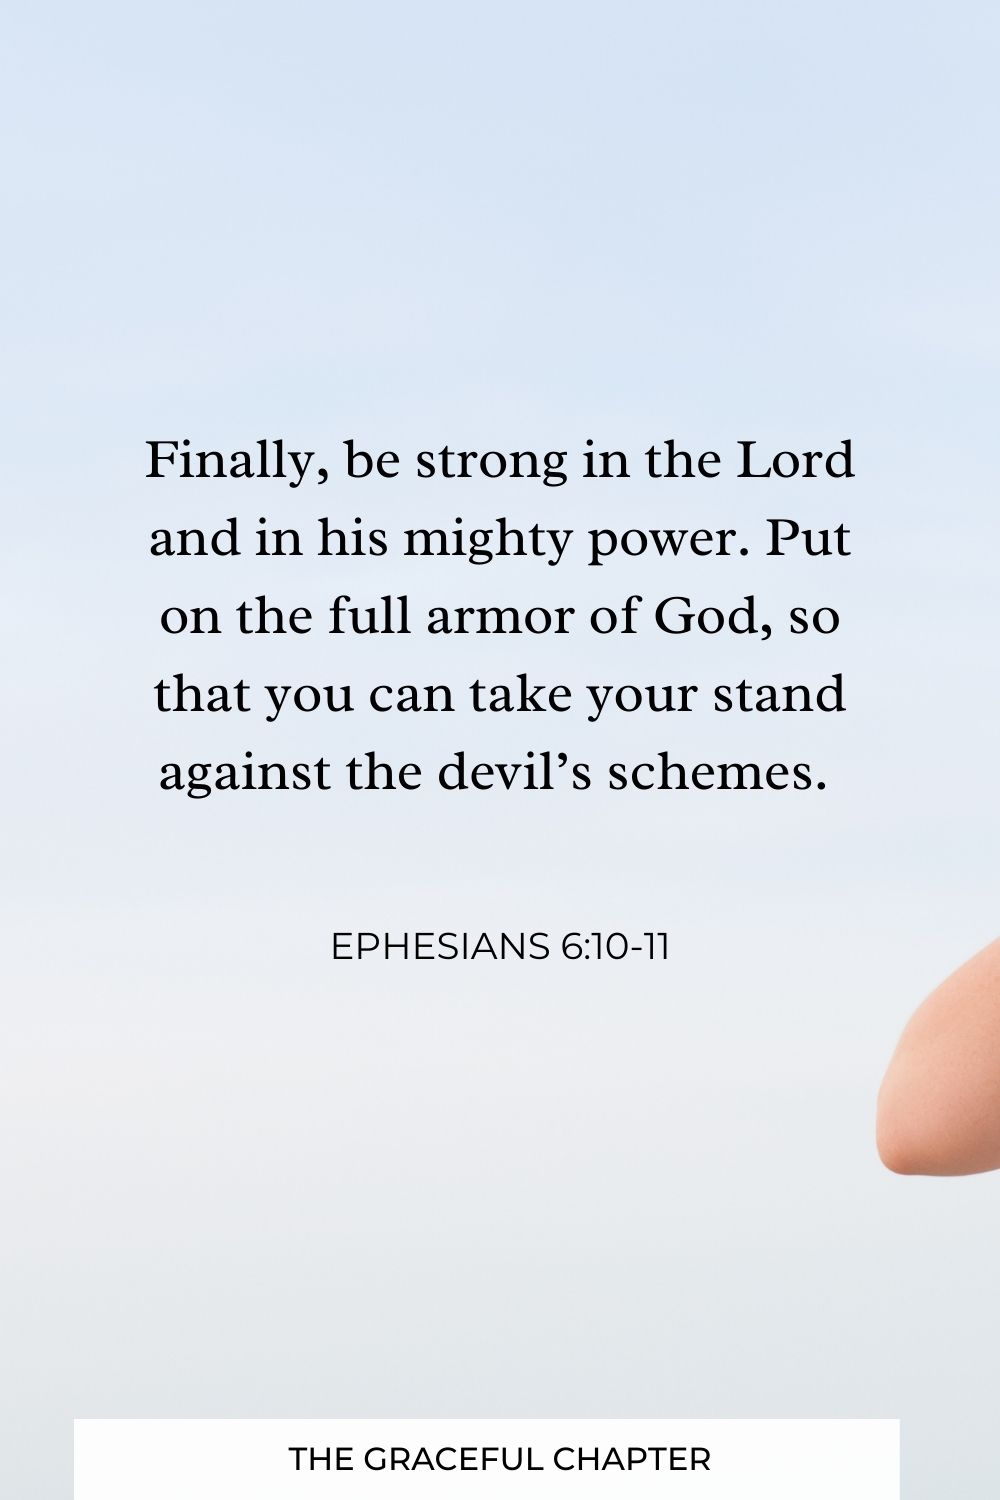 Finally, be strong in the Lord and in his mighty power. Put on the full armor of God, so that you can take your stand against the devil's schemes. Ephesians 6:10-11